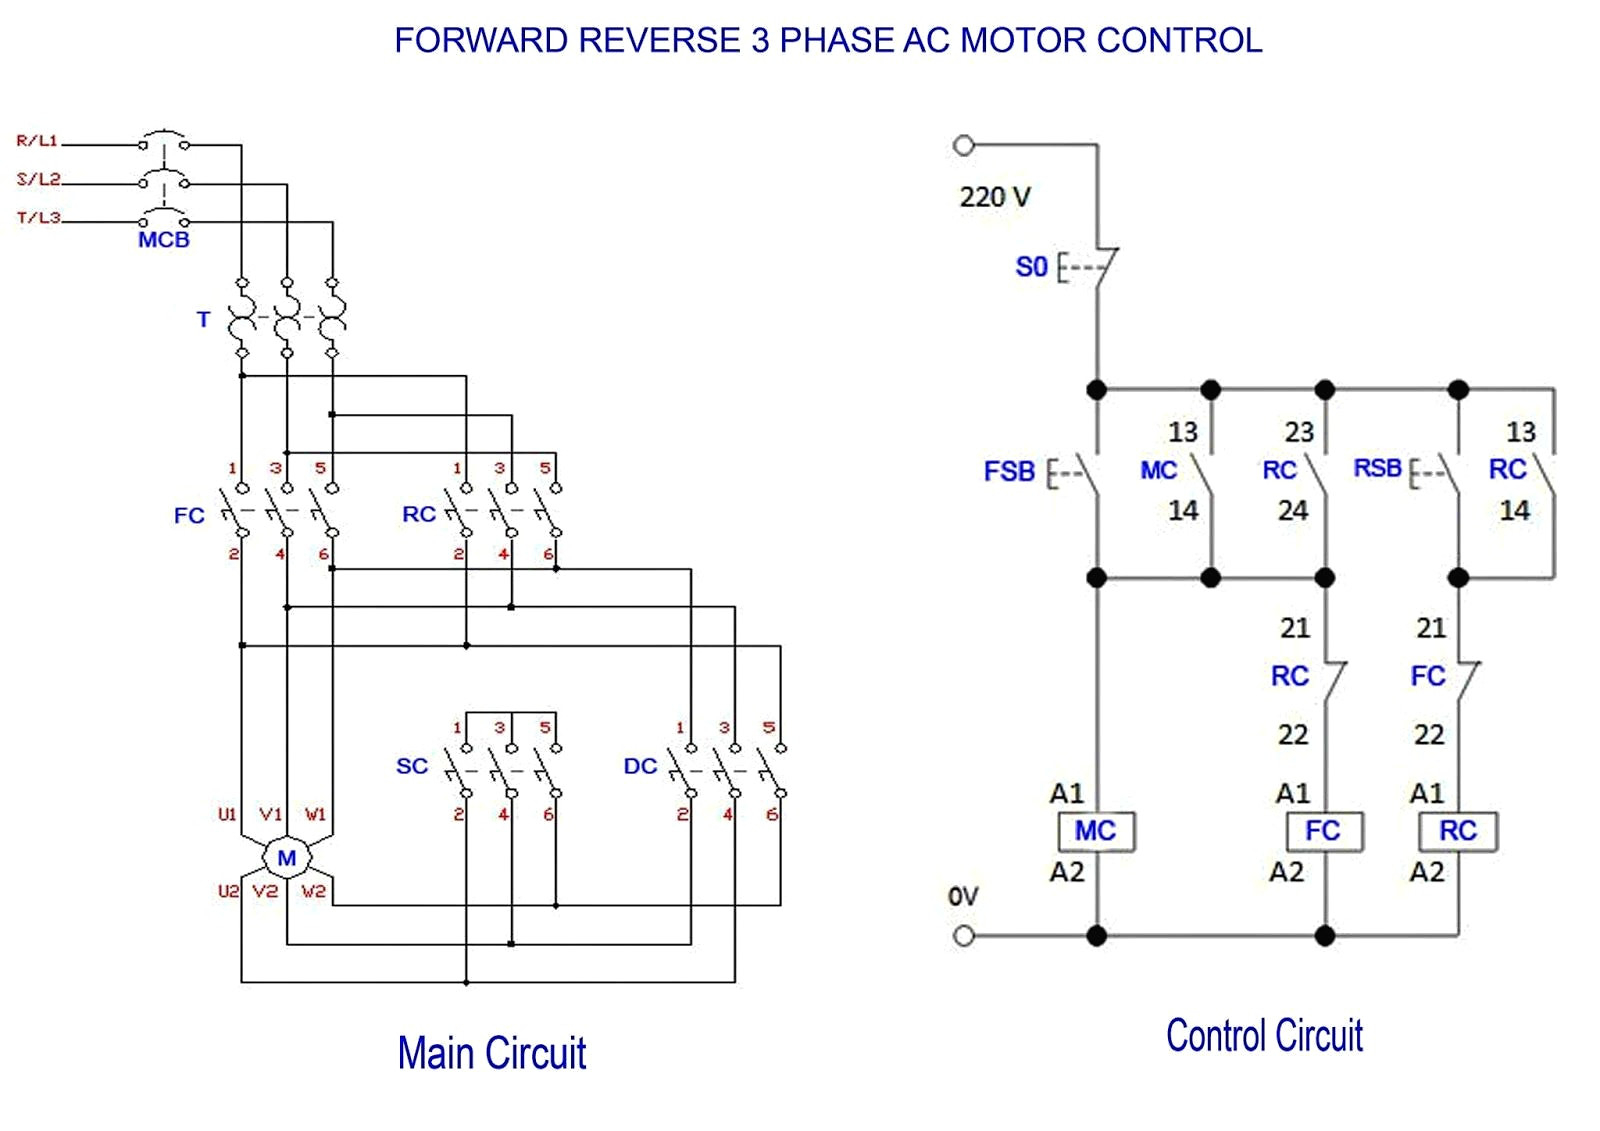 Ge Motor Control Wiring Diagrams - query on